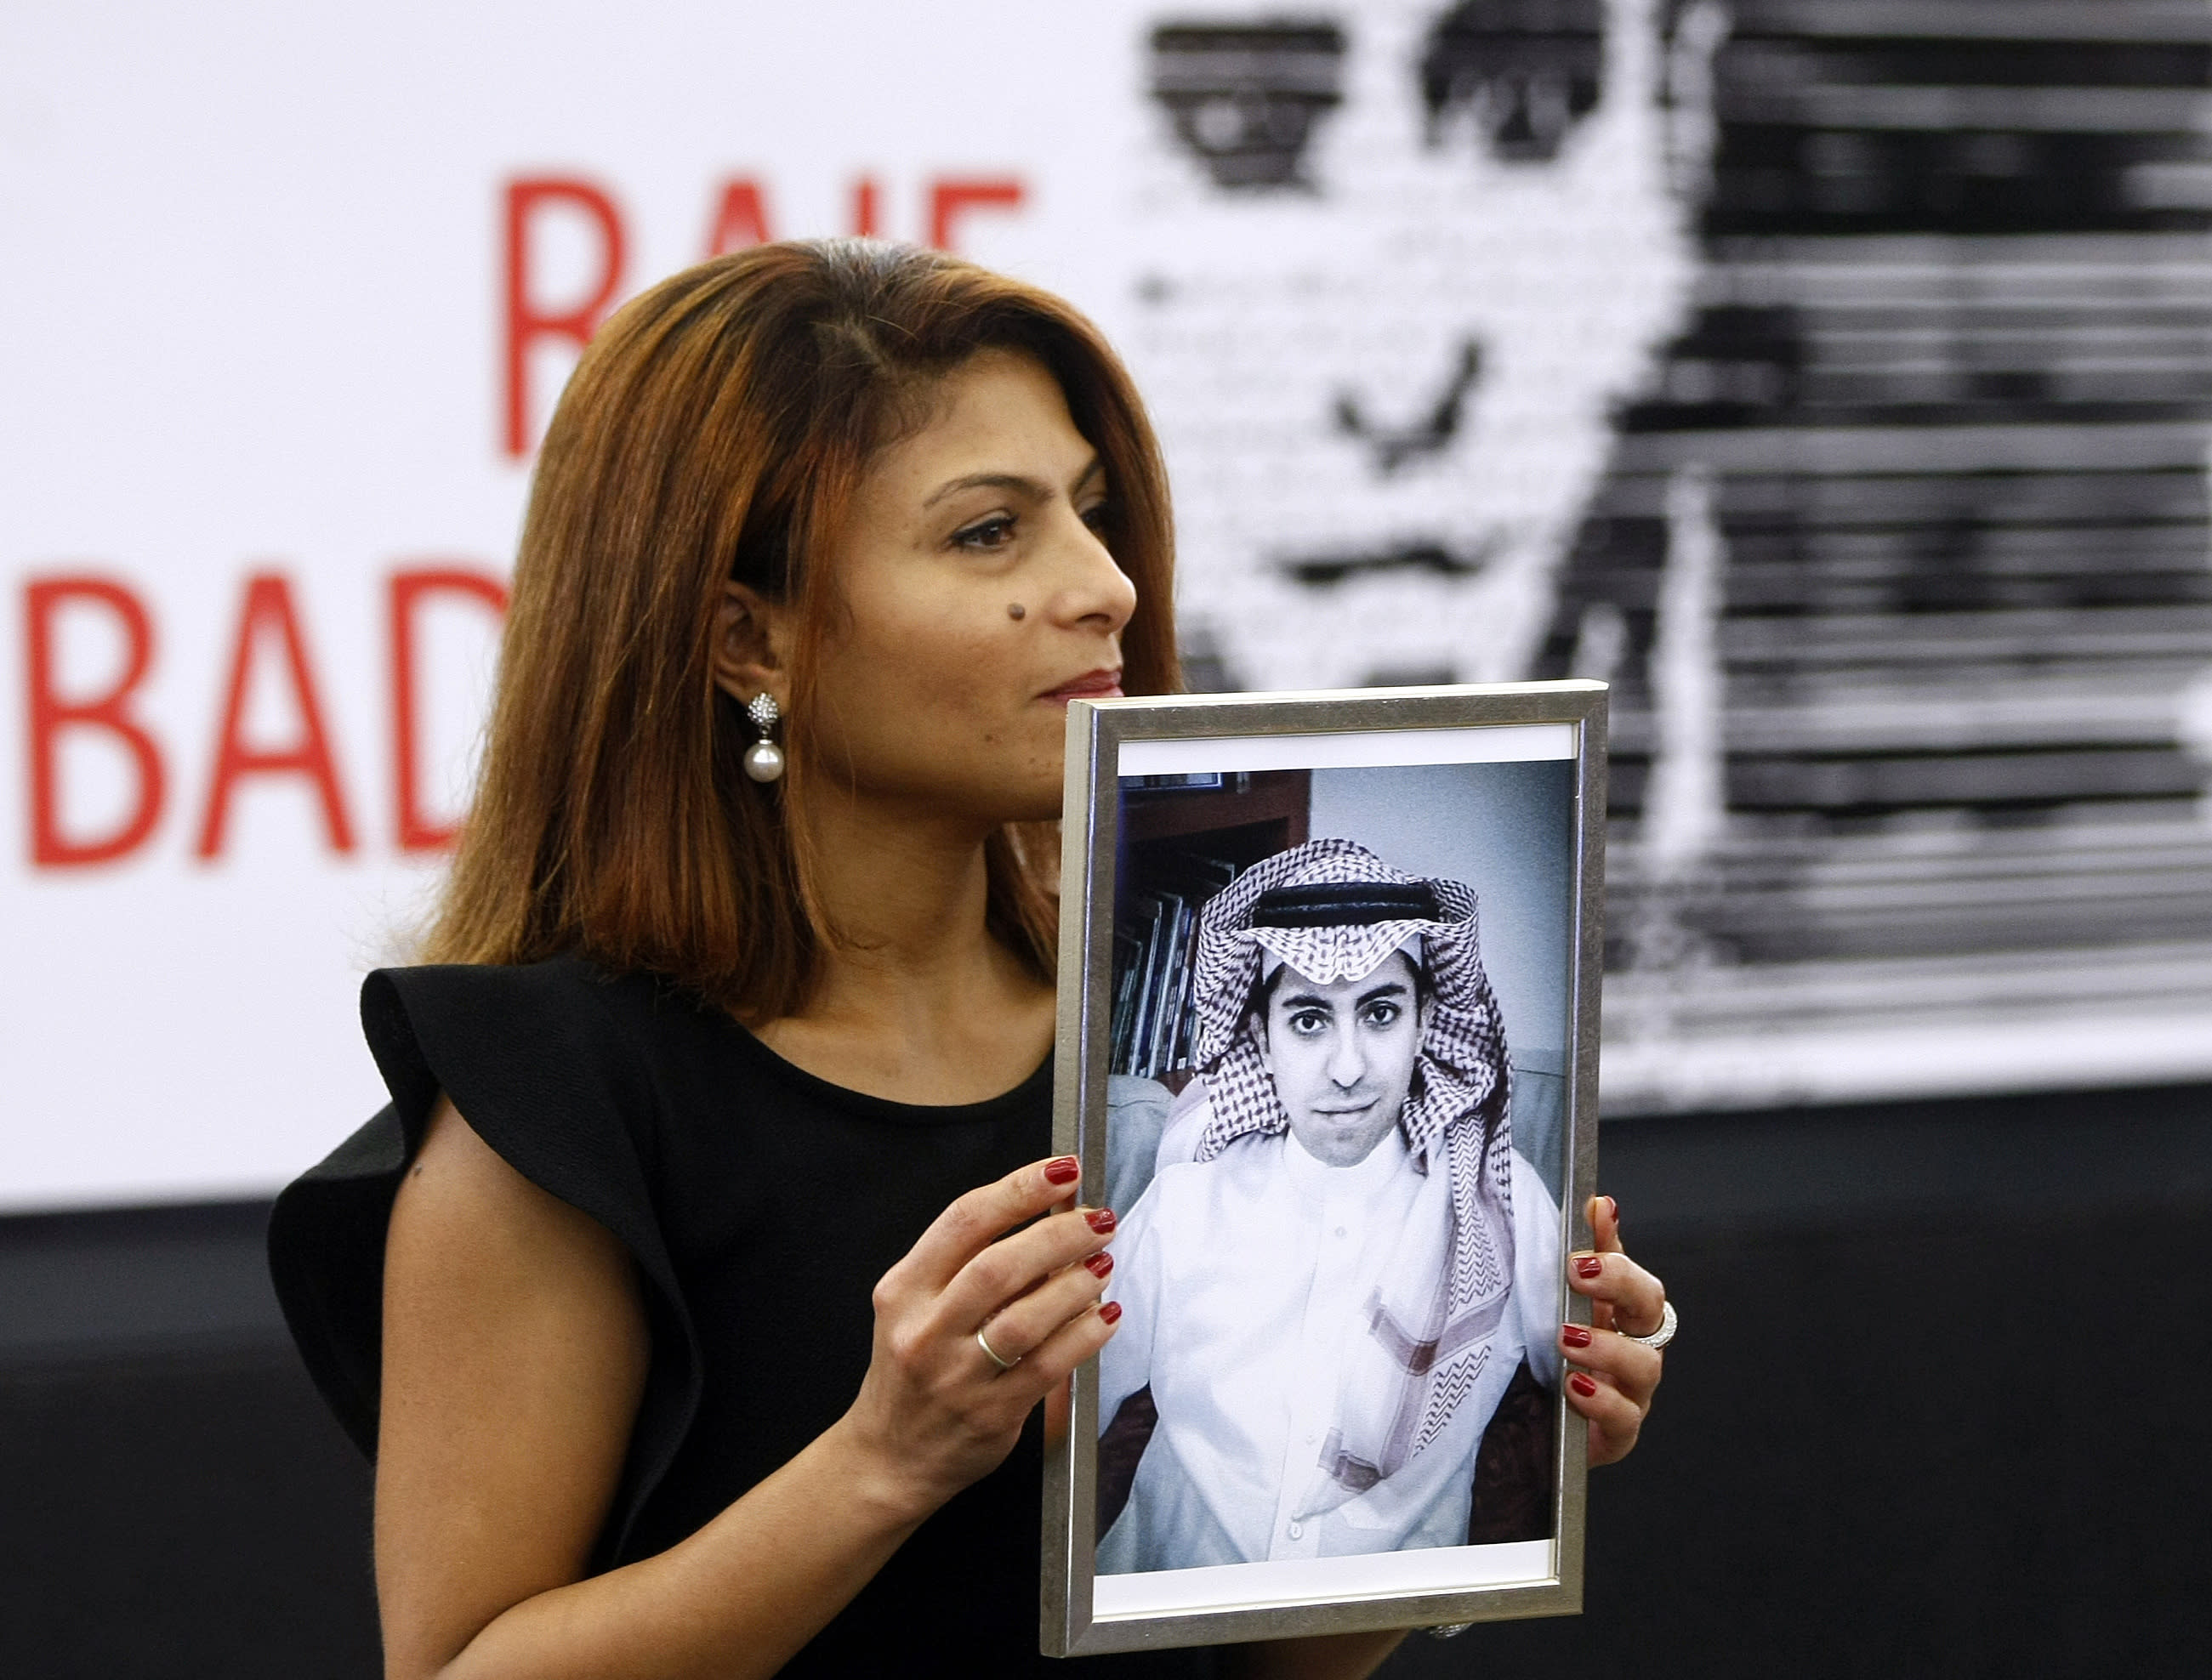 Saudi Arabia abolished the death penalty for minors